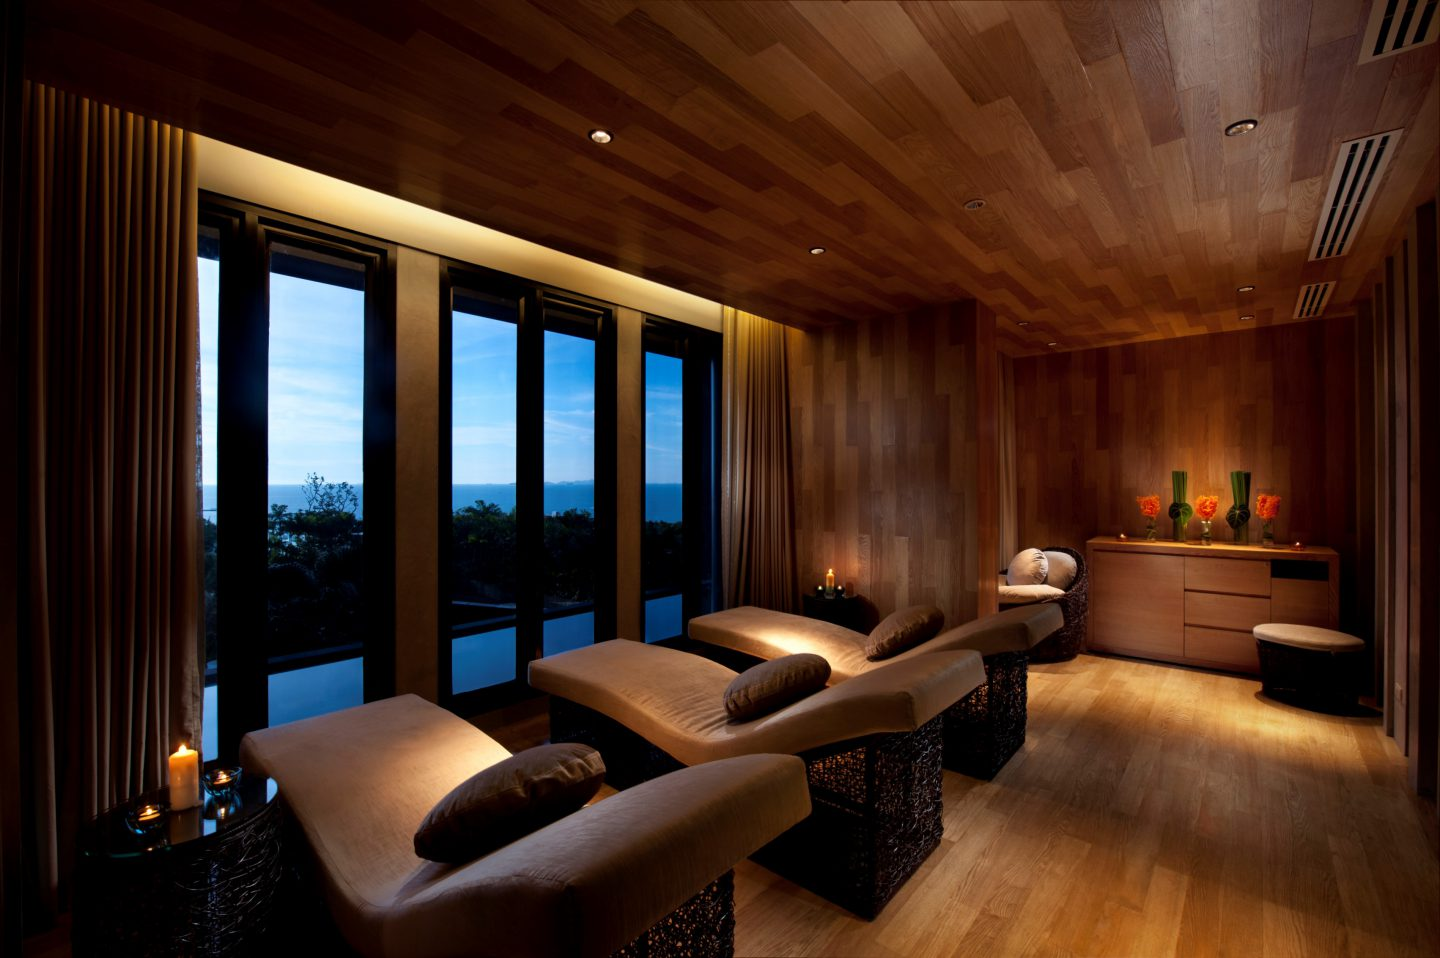 eforea Relaxation Room